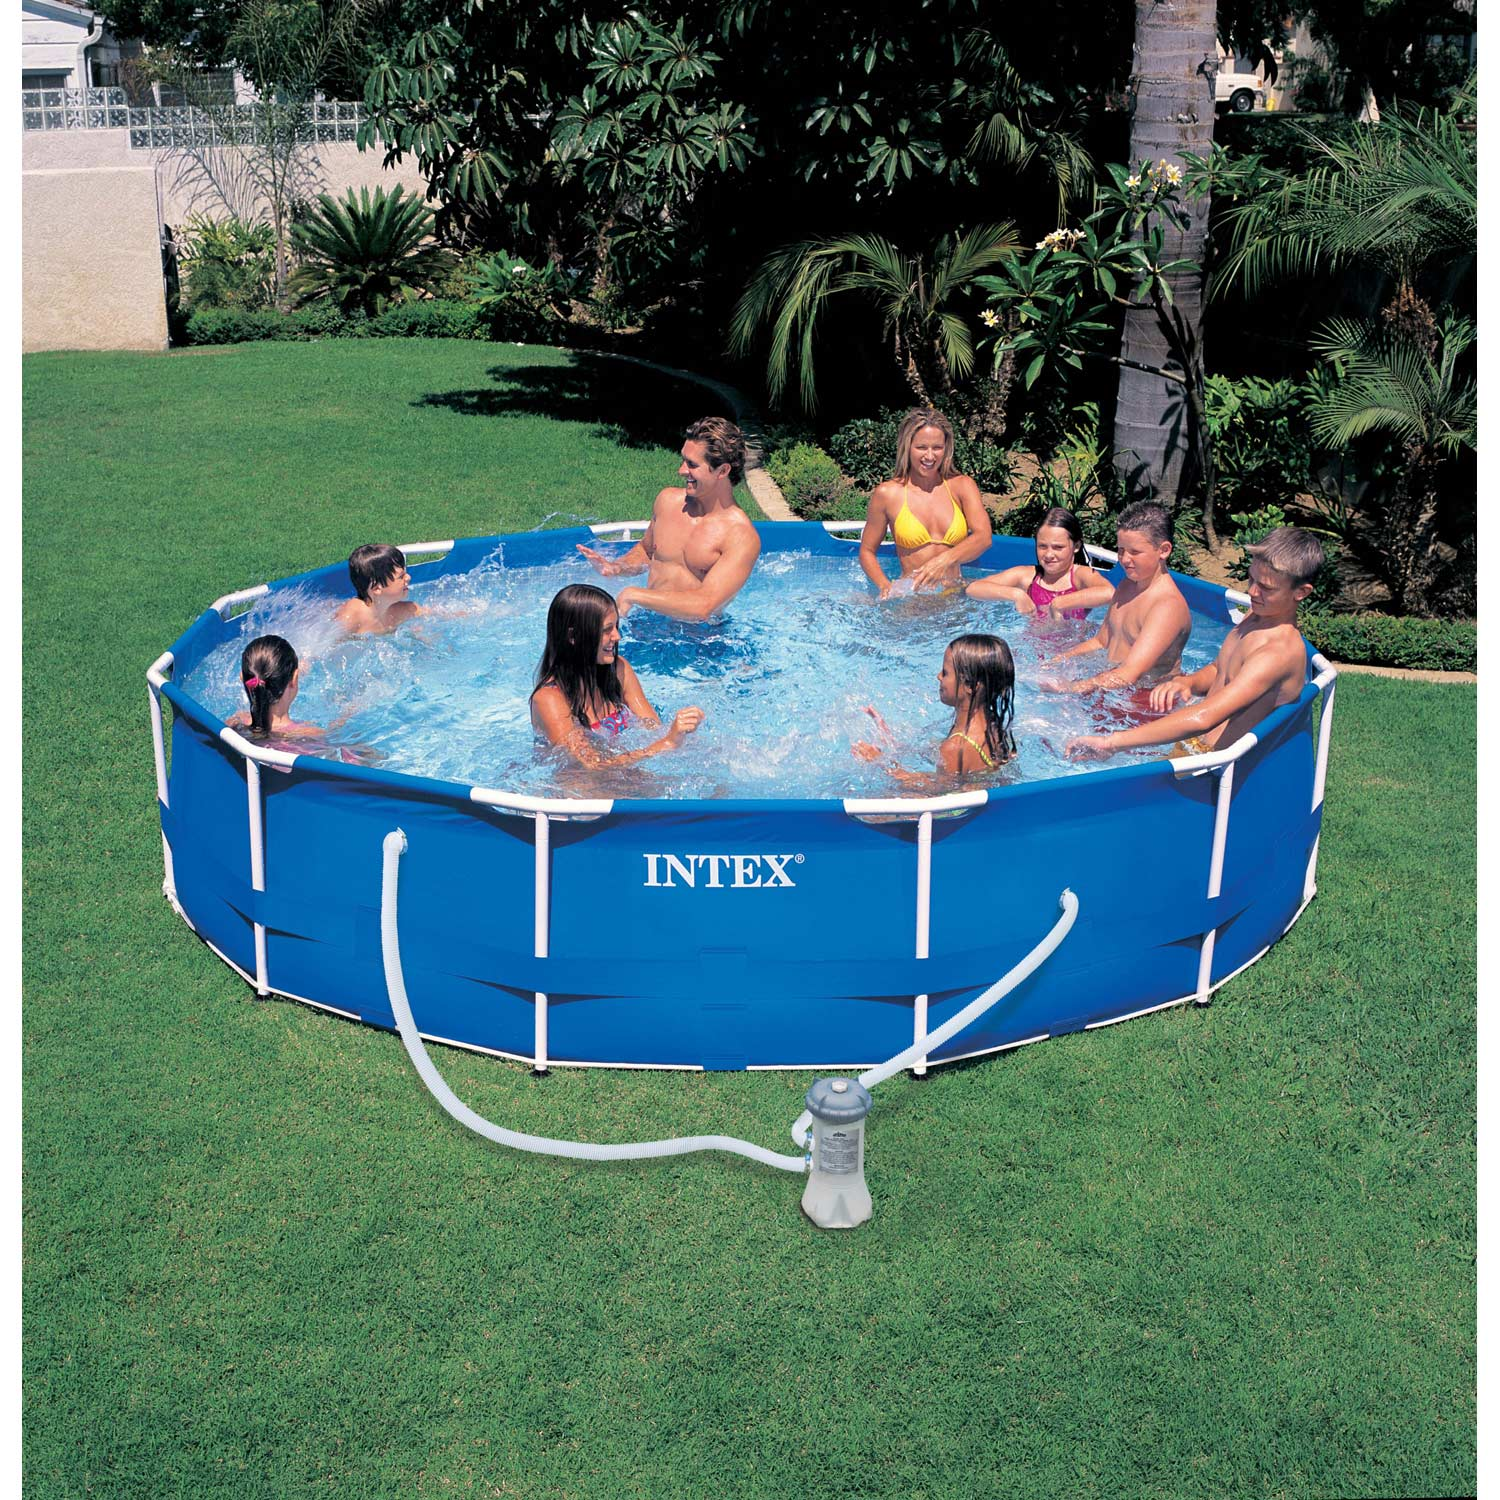 Piscine hors sol autoportante tubulaire metal frame intex for Prix de piscine